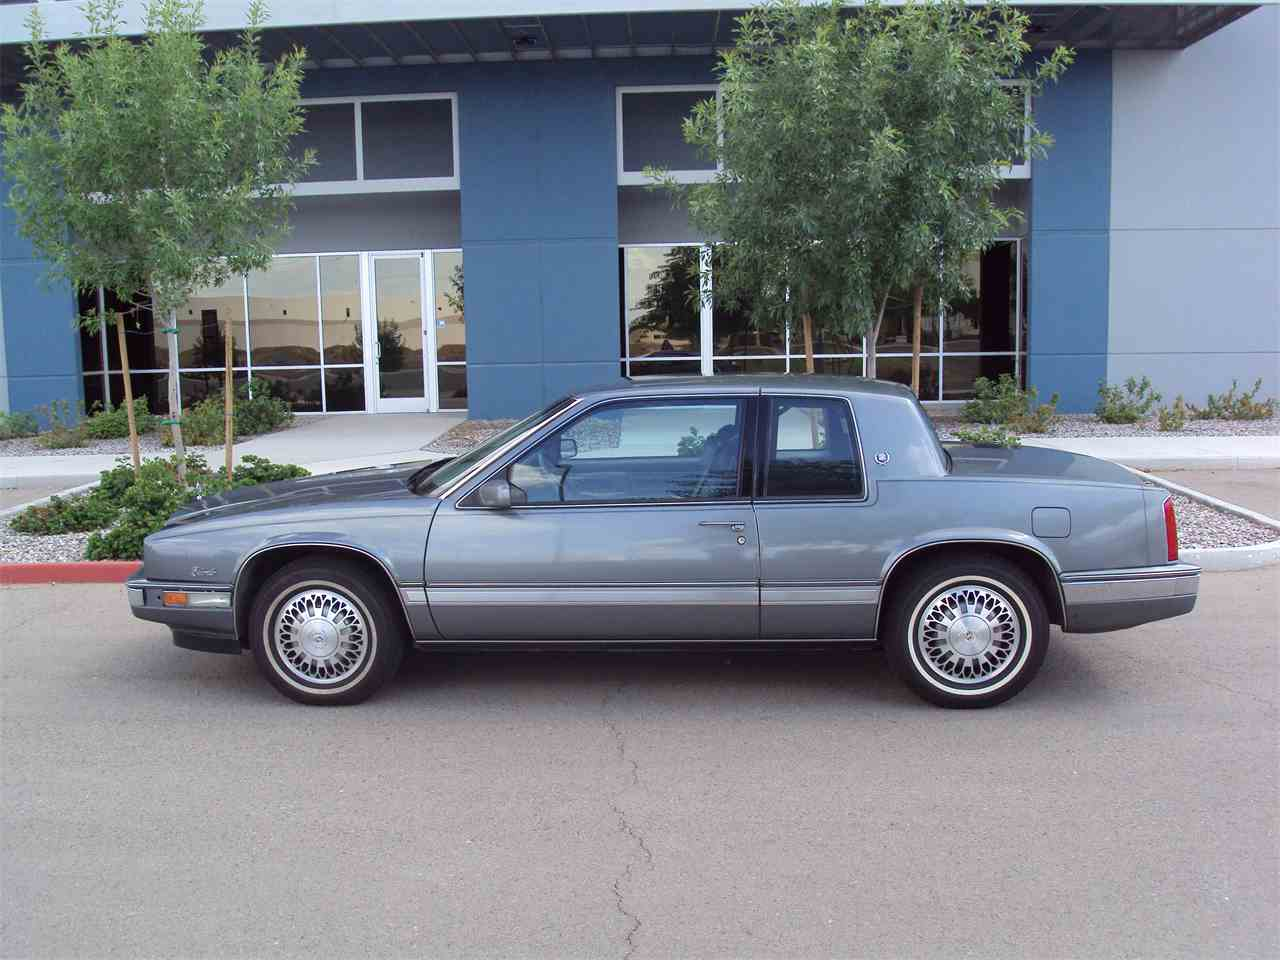 Large Picture of '88 Cadillac Eldorado - $7,500.00 Offered by a Private Seller - HPGF